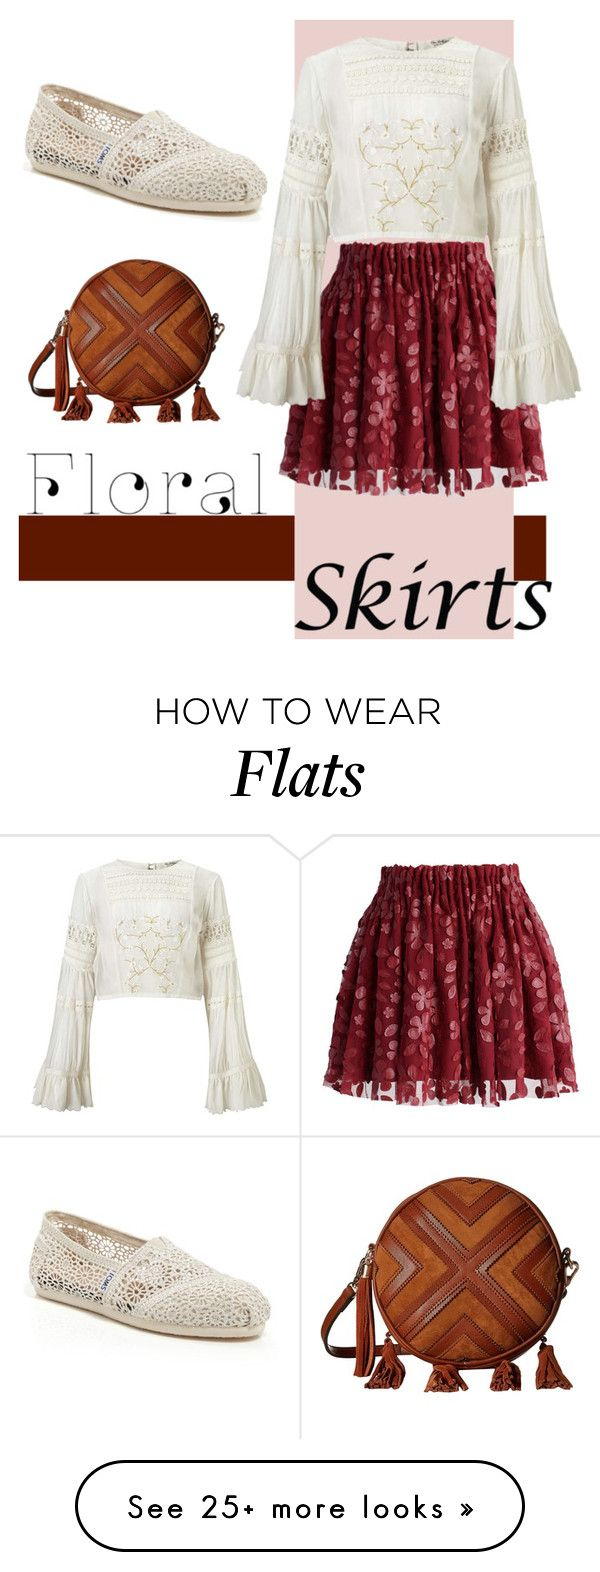 """Untitled #176"" by chelocean93 on Polyvore featuring Chicwish, Miss Selfridge, Gabriella Rocha, TOMS and Floralskirts"